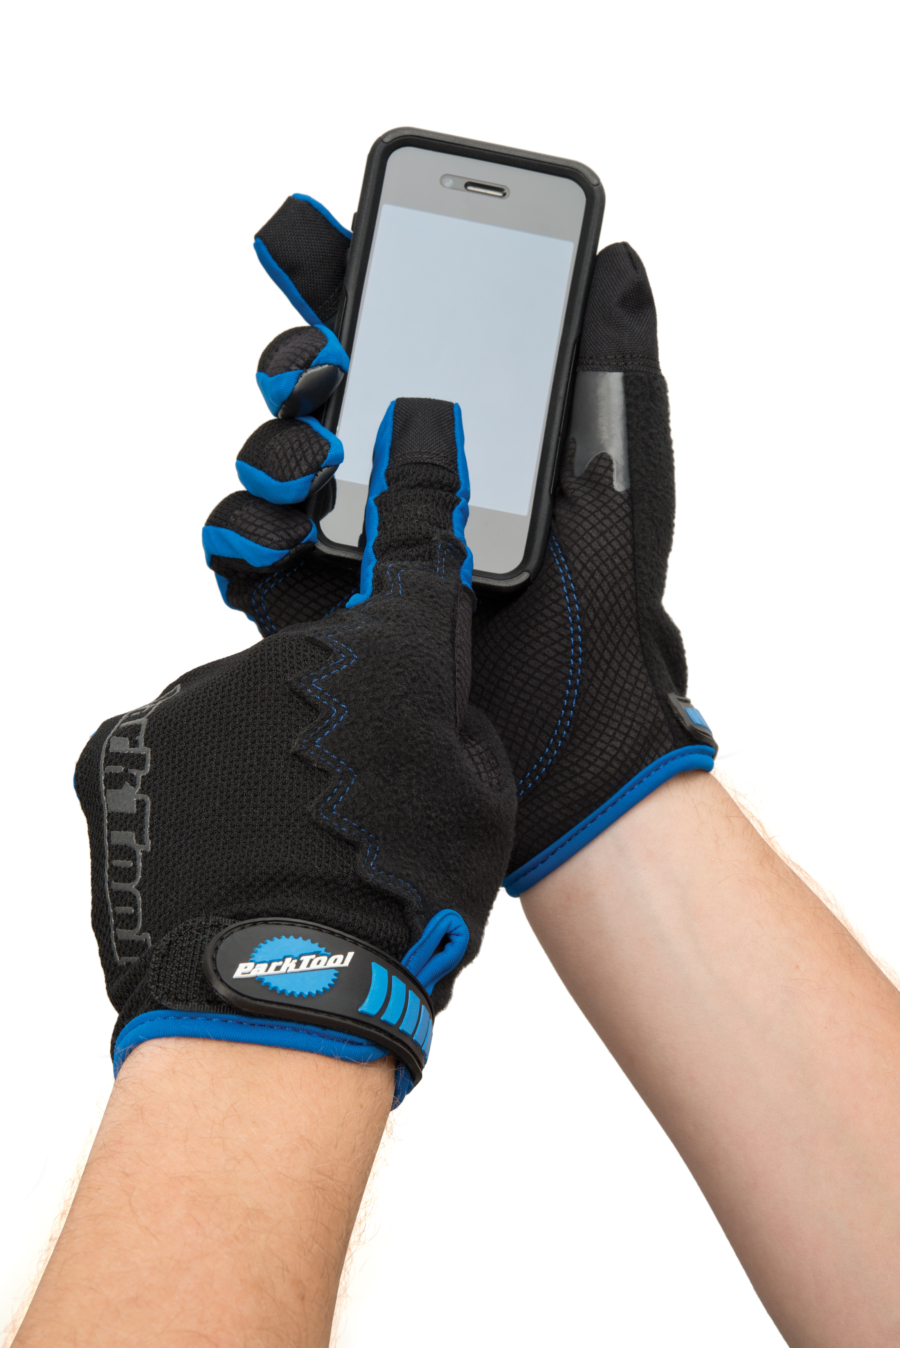 The Park Tool GLV-1 Mechanic's Gloves on hands holding smartphone and touching screen, enlarged